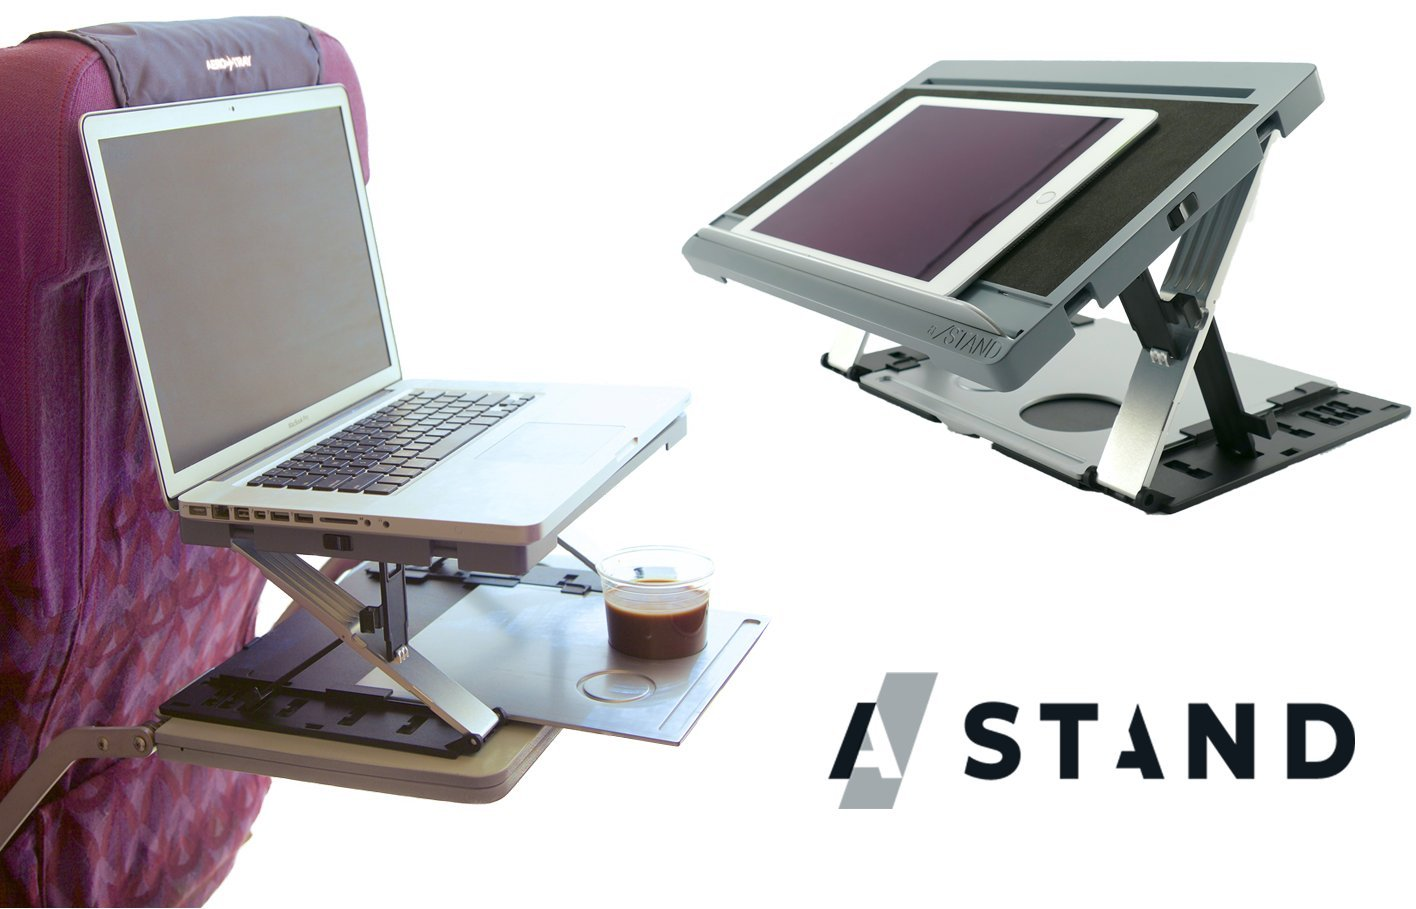 A-Stand Portable Laptop Computer Standing Desk and Tablet Holder Stand Case with 20 Adjustability Settings Grey